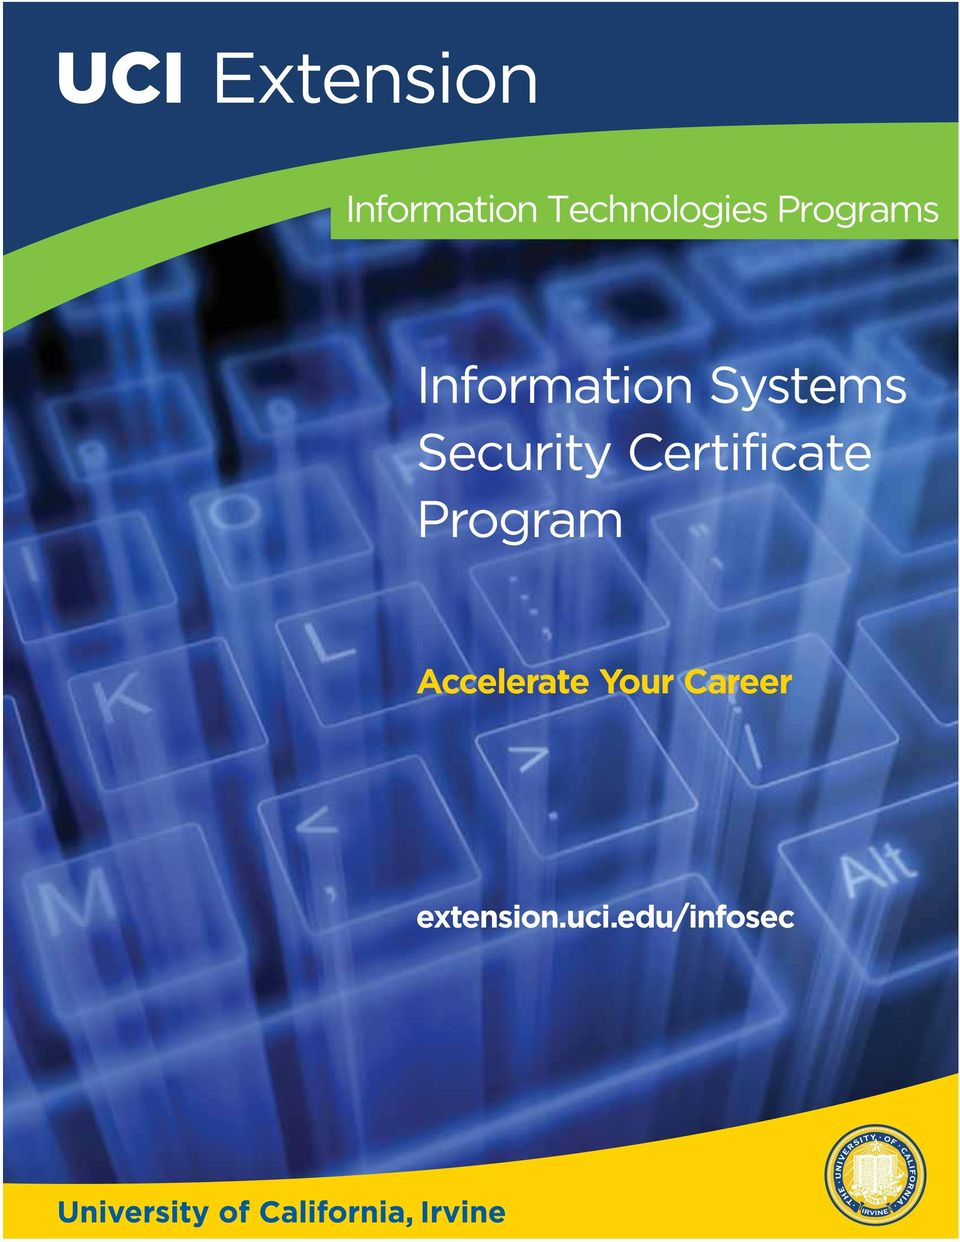 Security Certificate Program